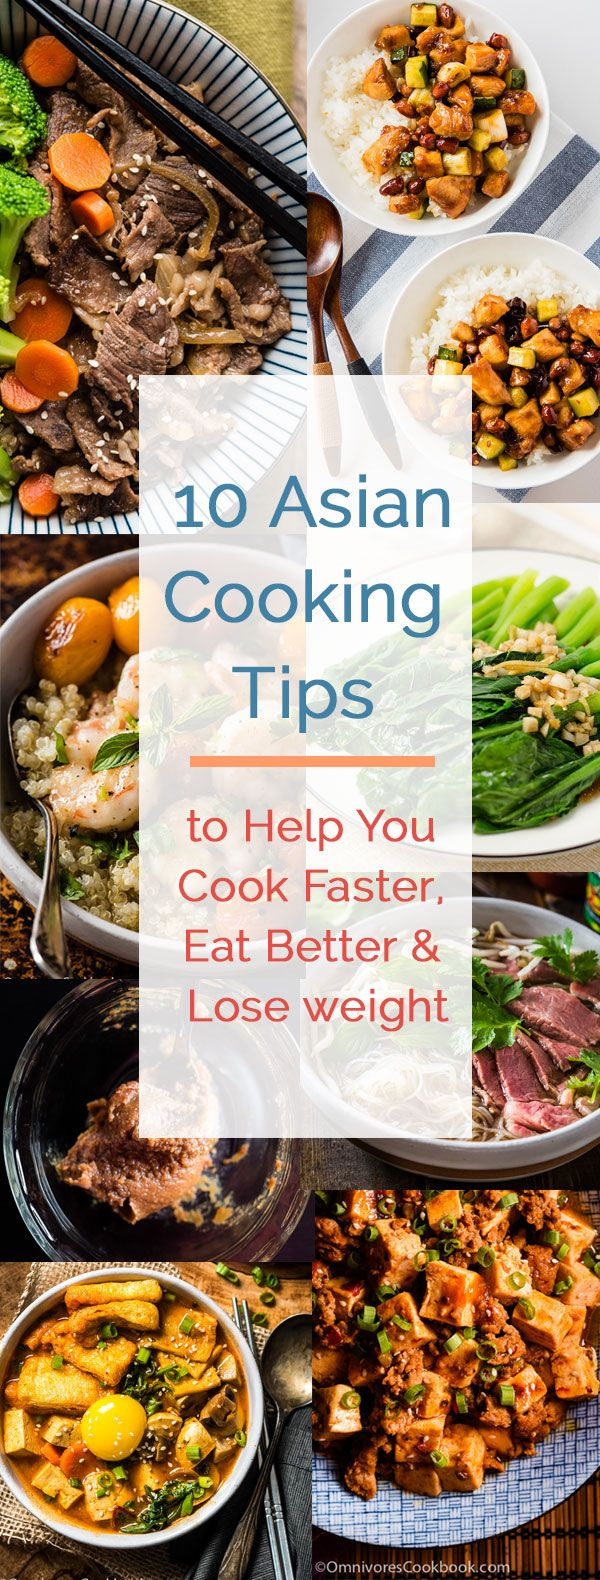 10 Asian Cooking Tips to Help You Cook Faster, Eat Better & Lose weight | omnivorescookbook.com #Asian #CookingTips